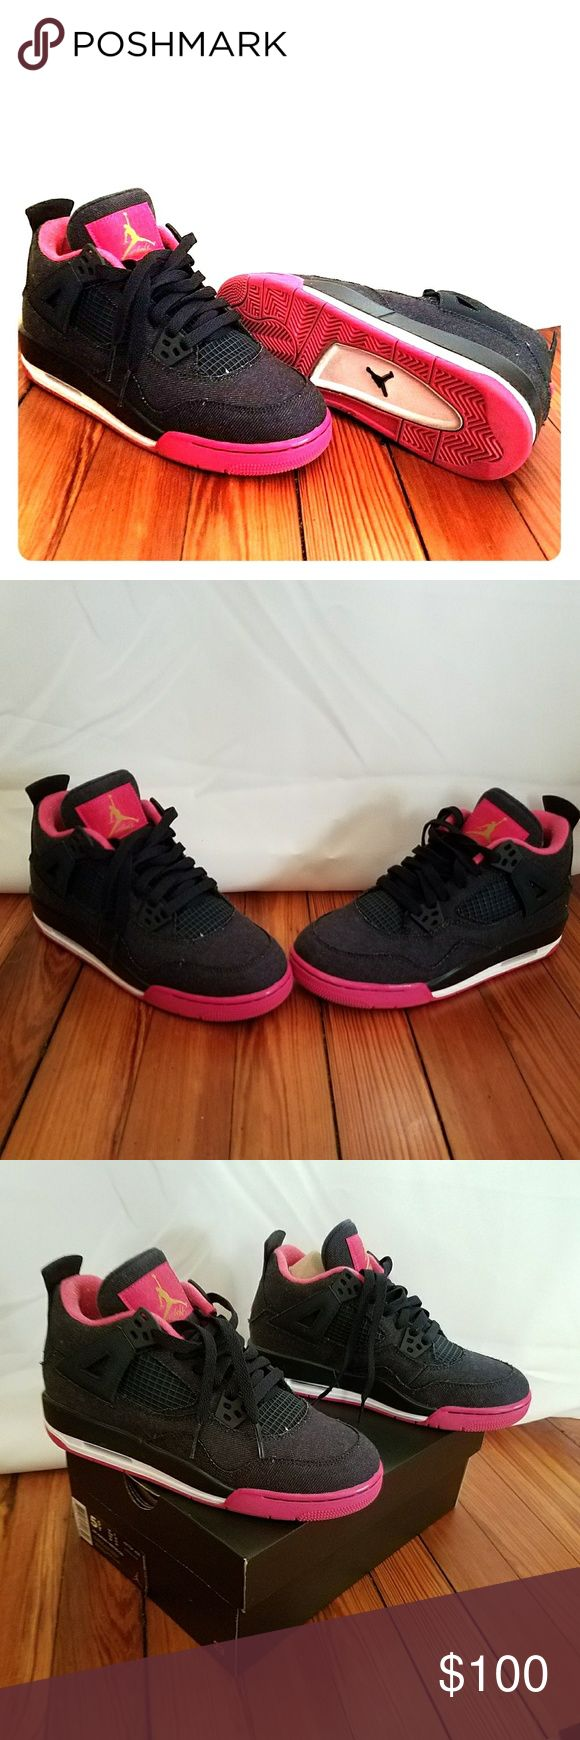 Nike Air Jordan Retro 4 Nike Air Jordan Retro 4. Denim and Pink. Worn only 1 time. Comes with original box. Nike Shoes Sneakers